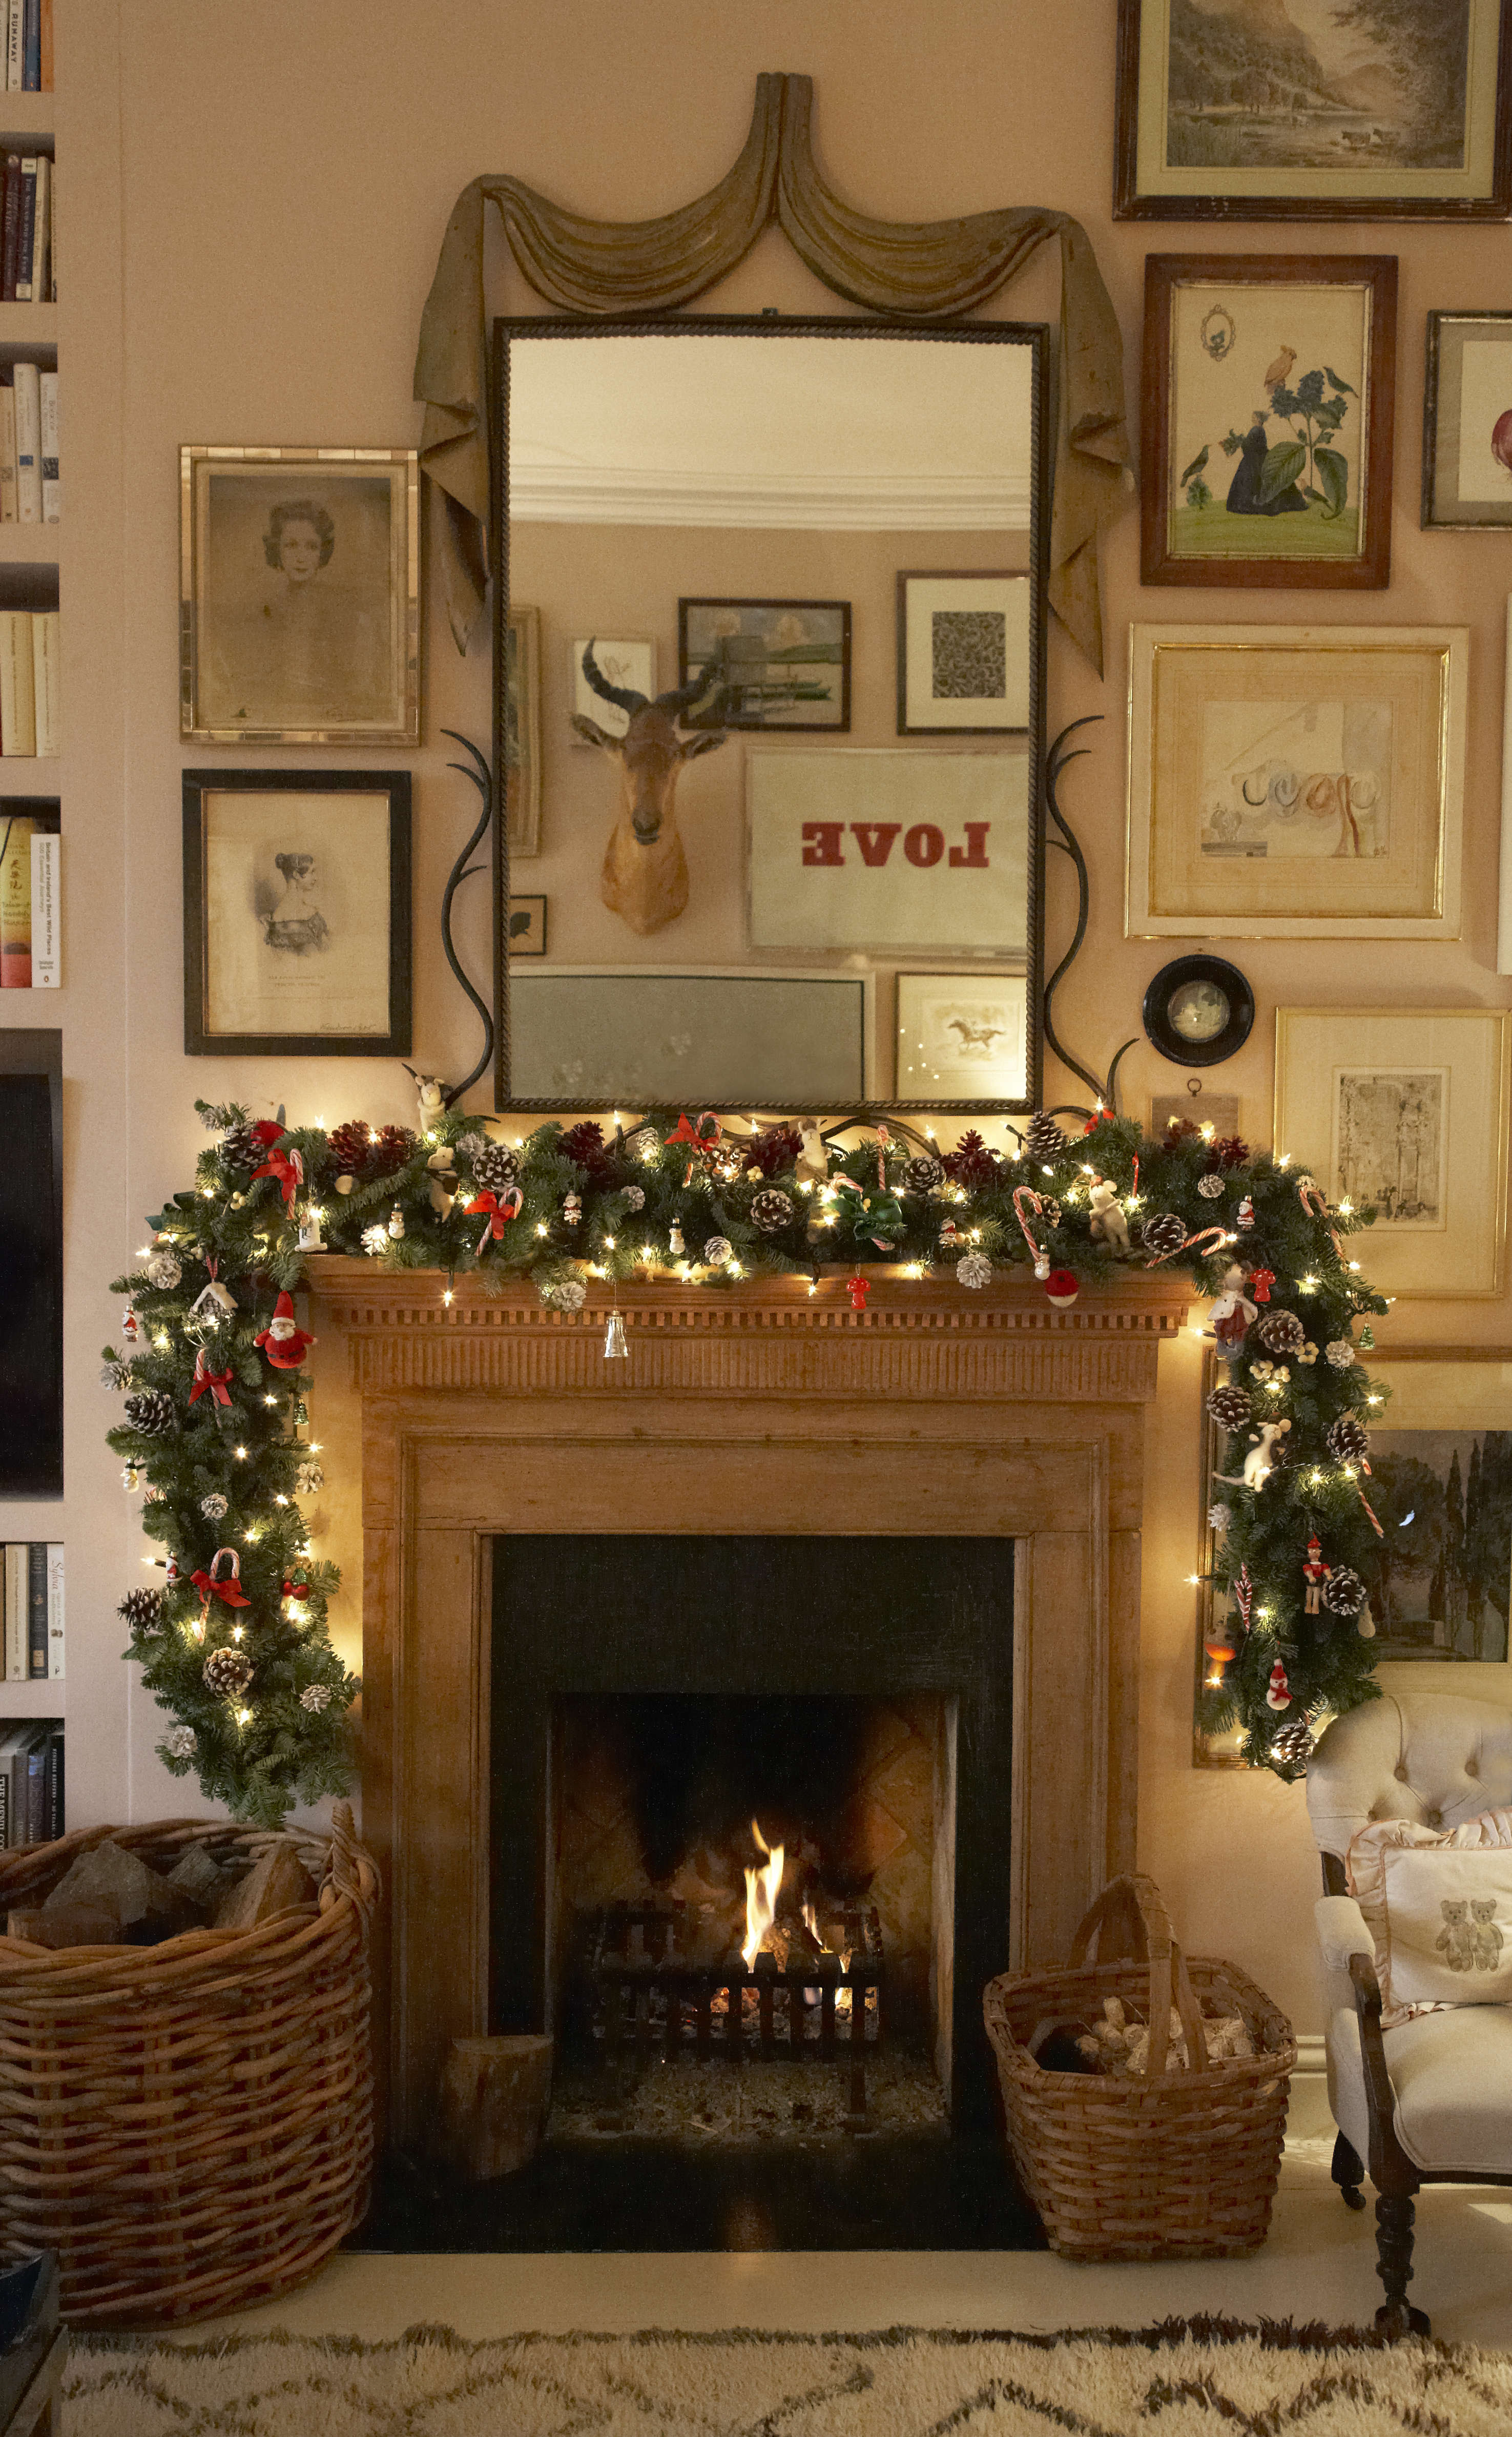 Expert Advice 8 Decorating Ideas For An English Holiday From London Designer Rita Konig Remodelista